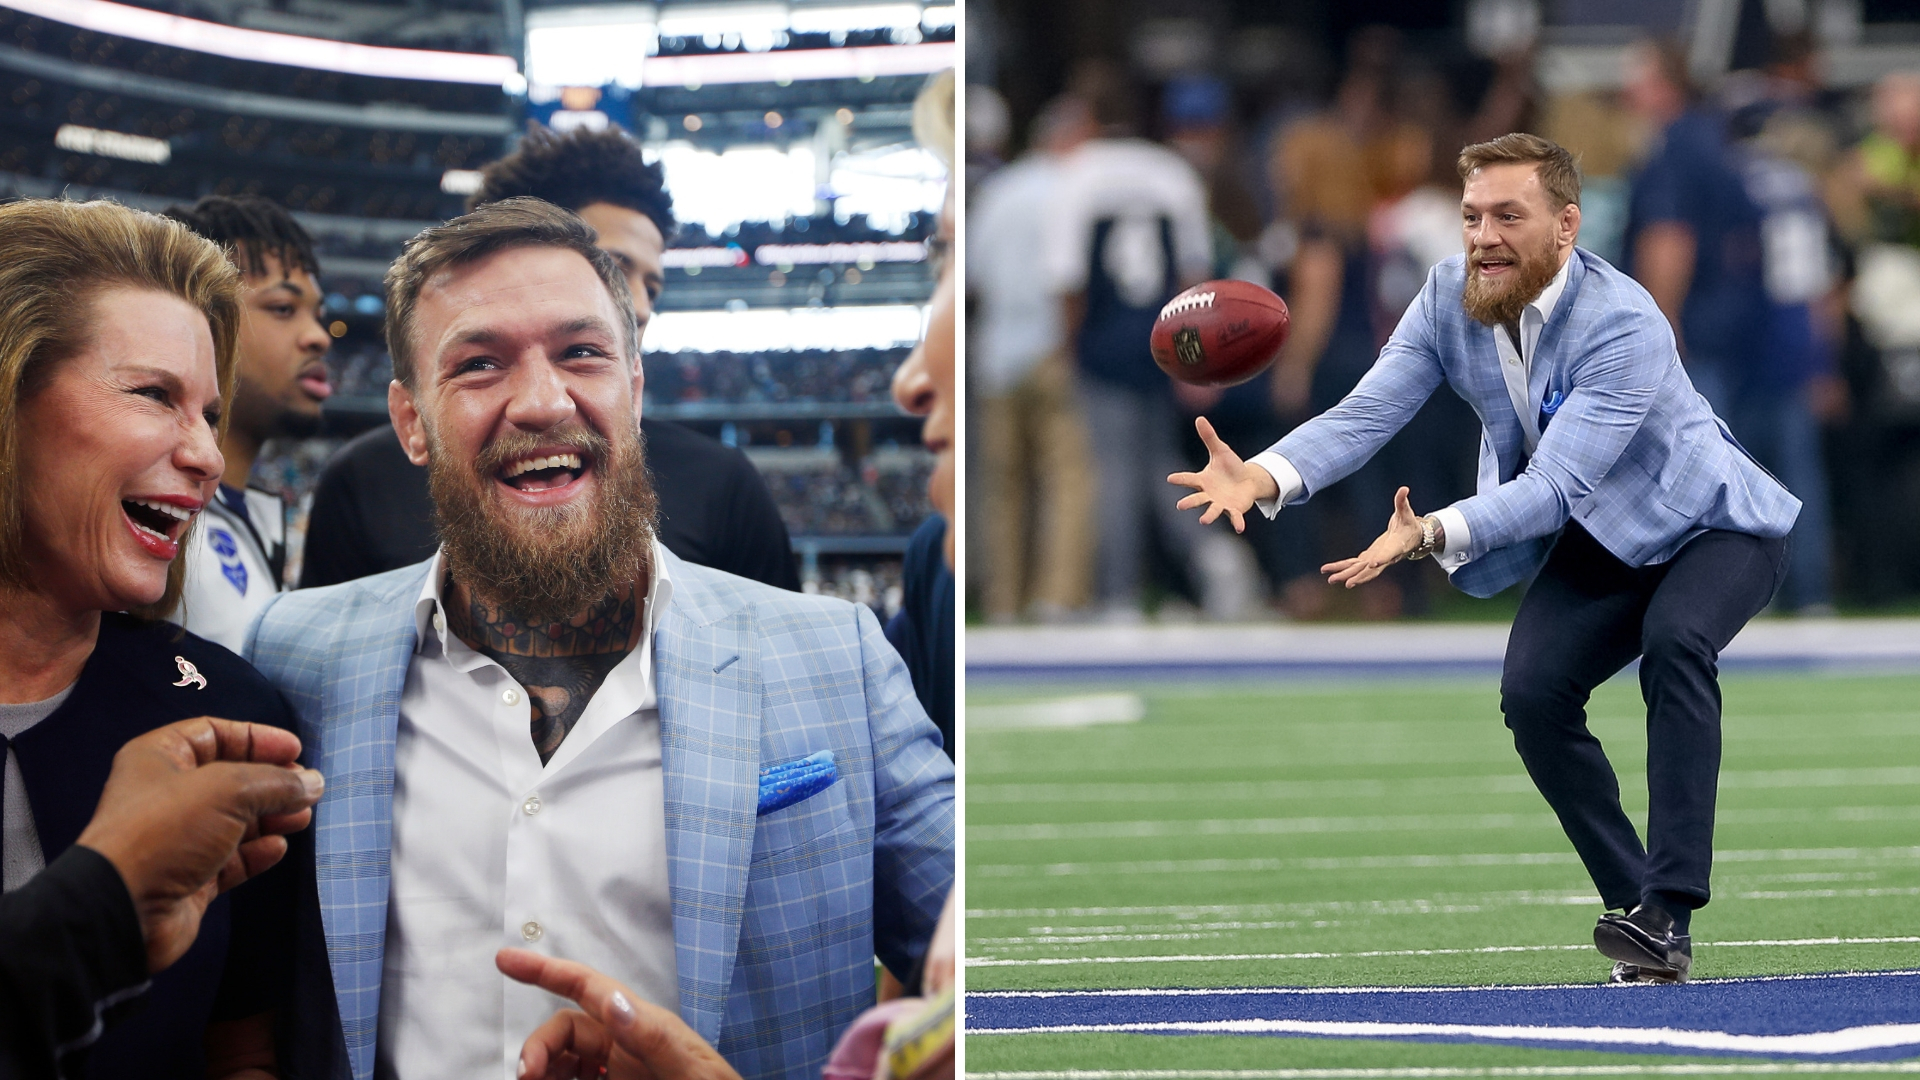 Conor McGregor Lights Up Dallas Cowboys' Match And Players Celebrate With The 'Billi Strut'